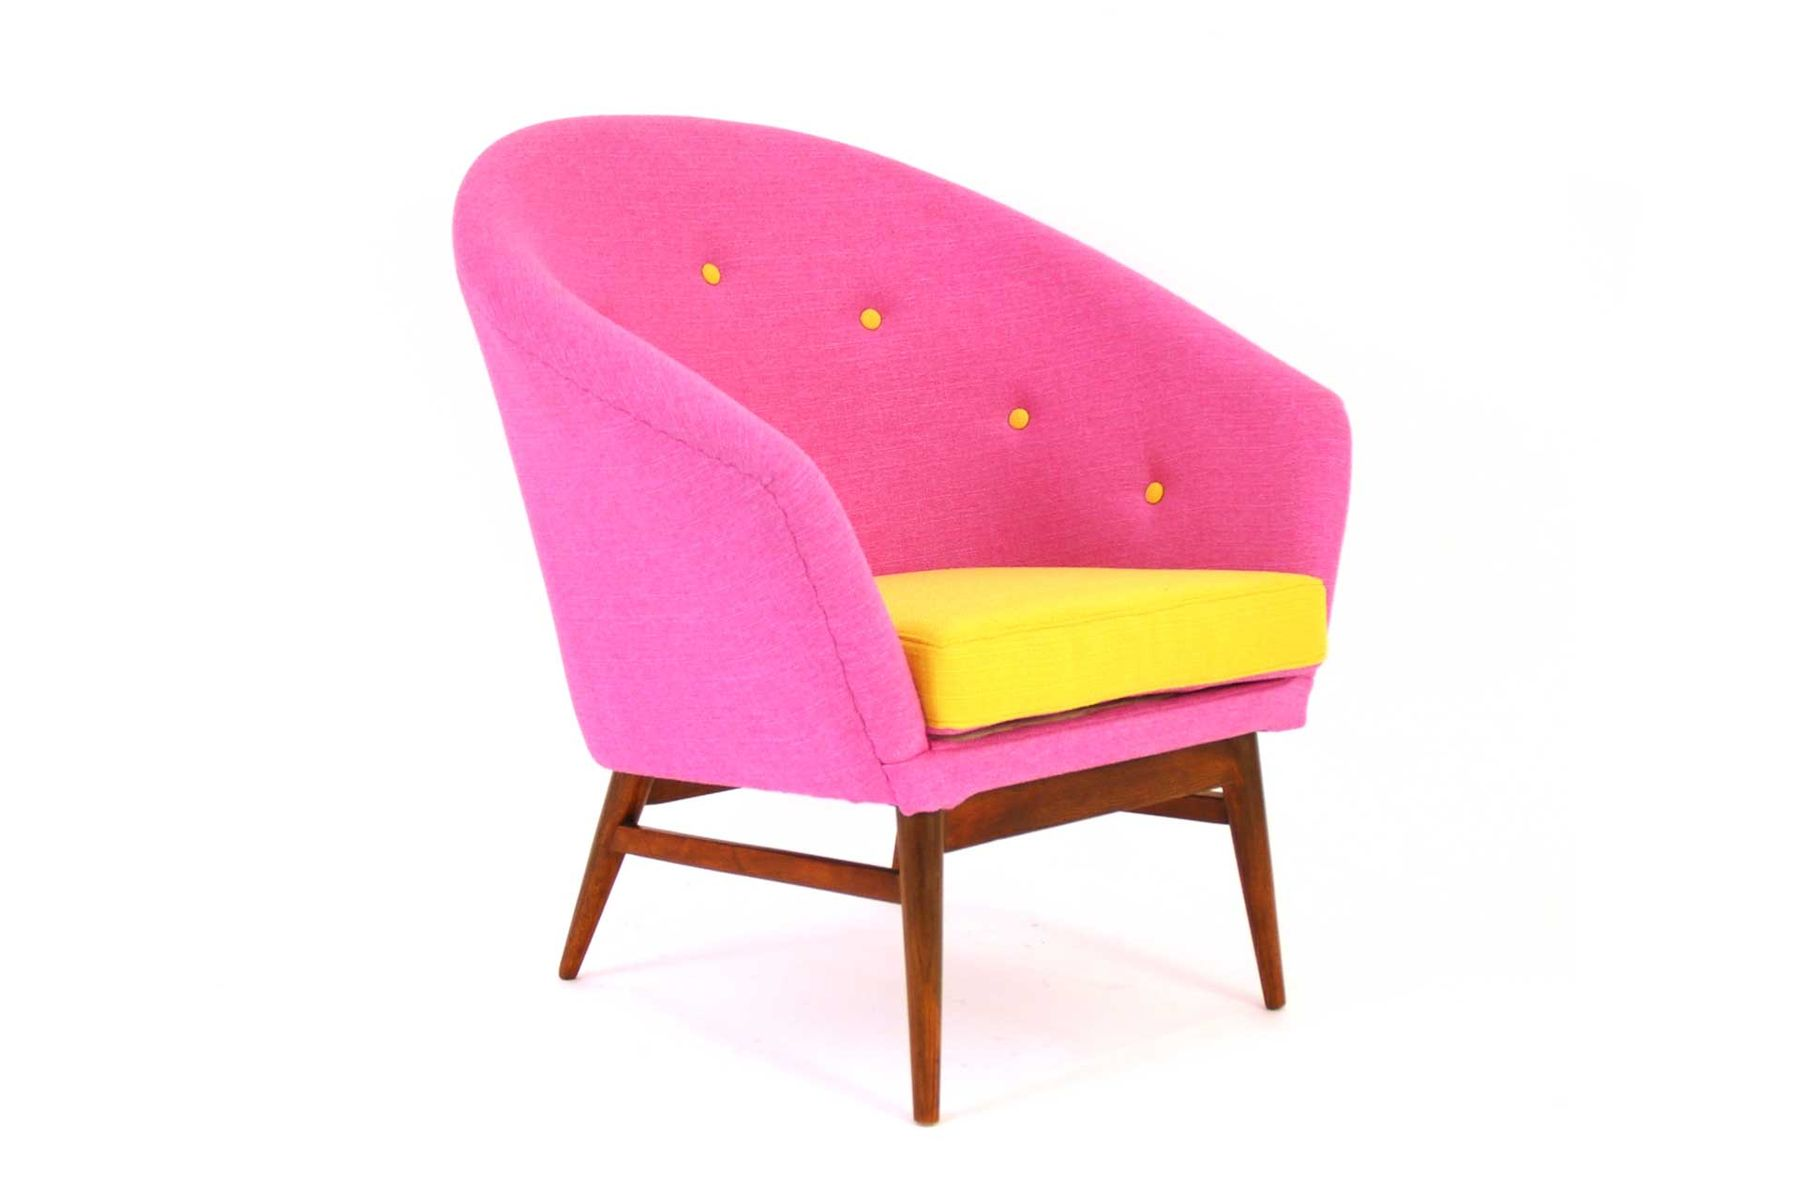 Austrian Pink Amp Yellow Chair 1950s For Sale At Pamono